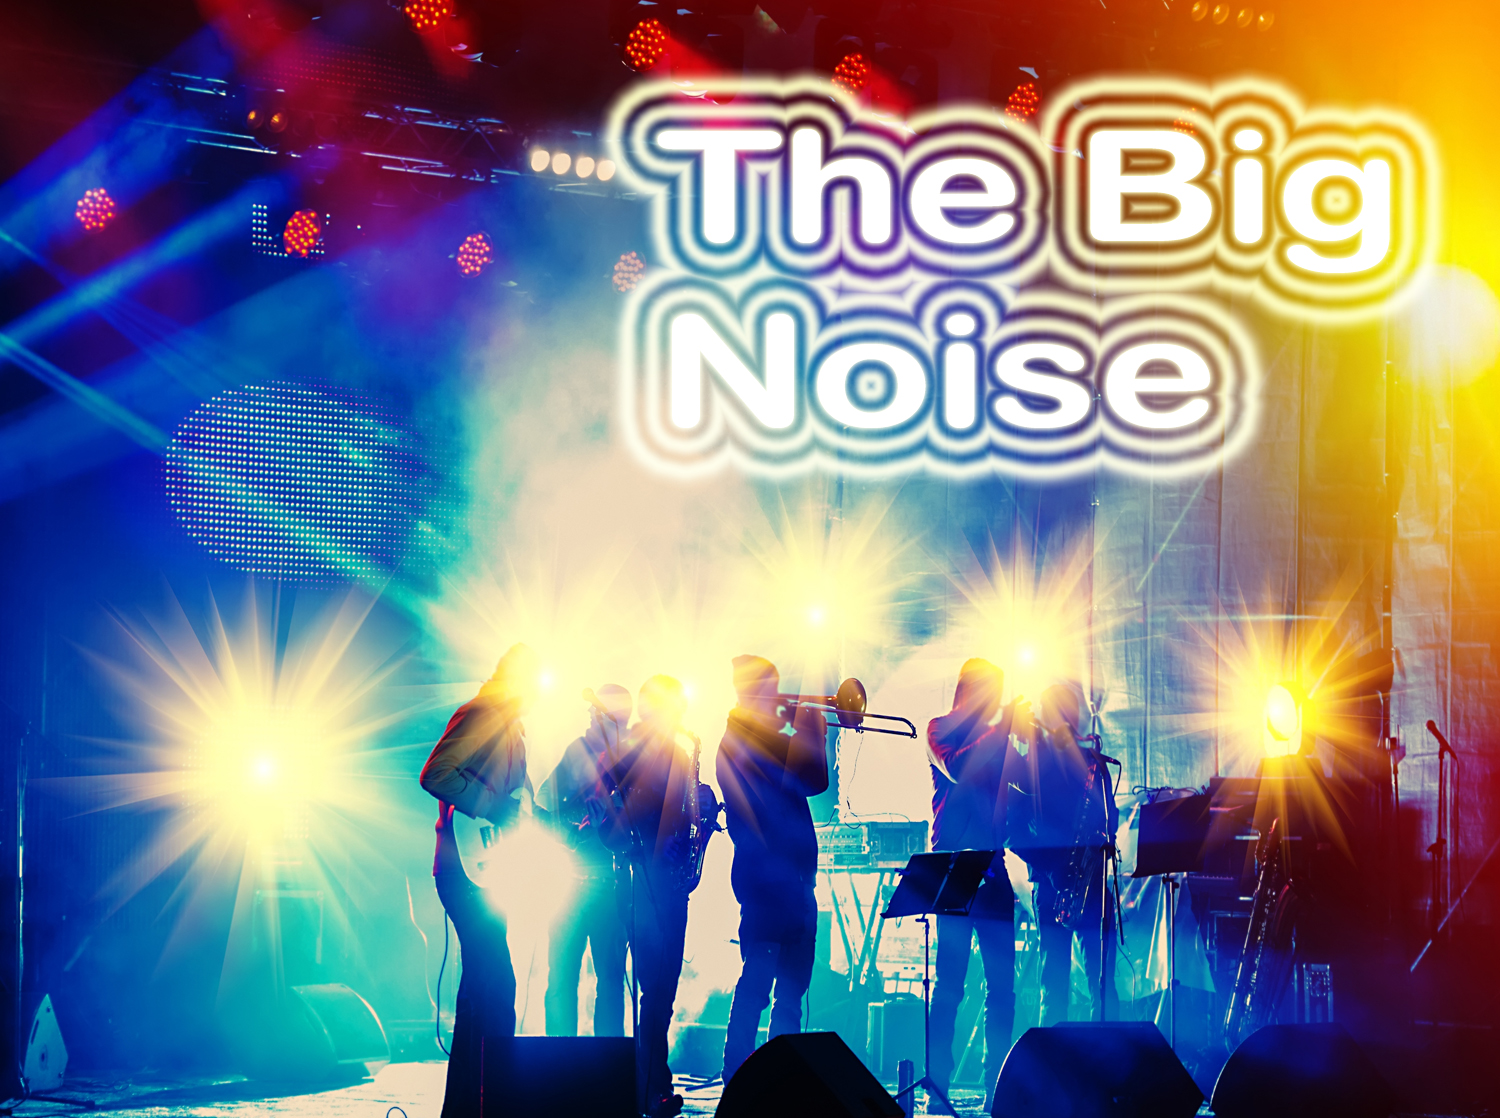 Big Noise Poster no Frame.jpg